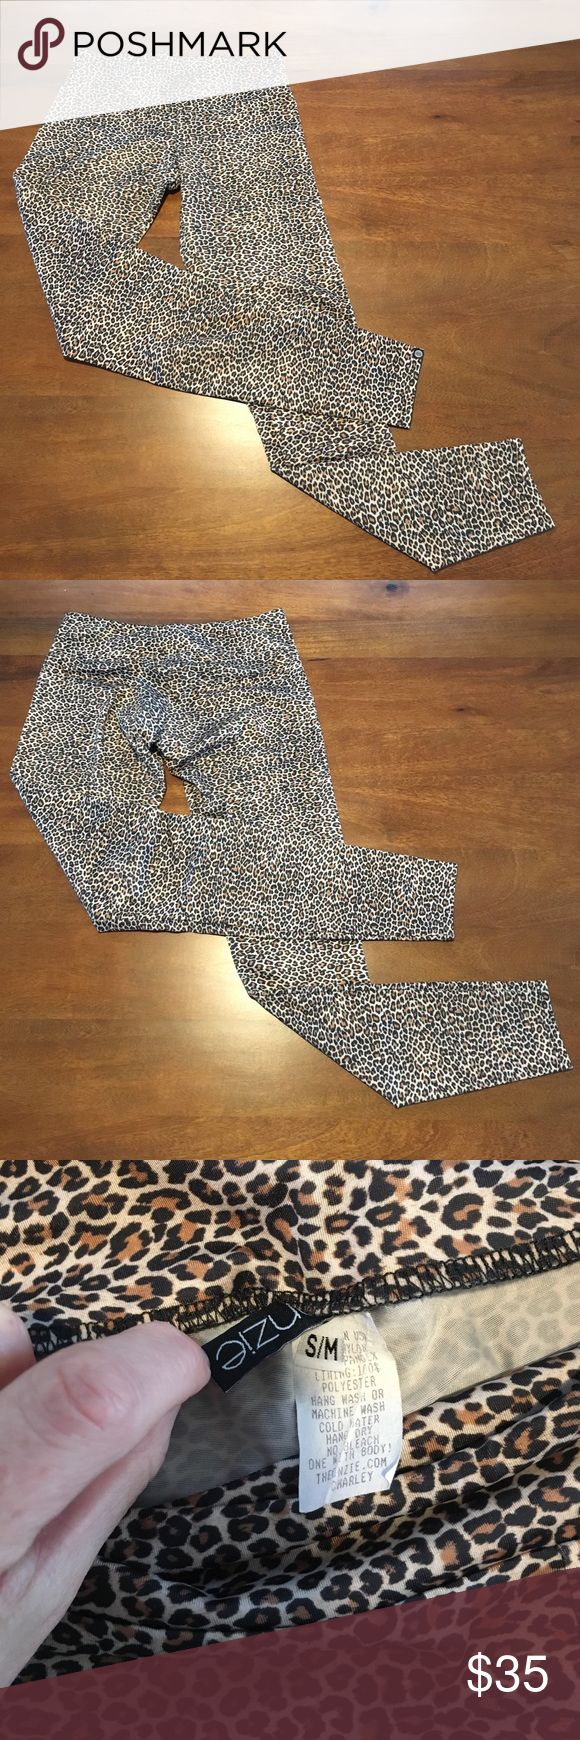 Onzie Long Cheetah Legging Onzie Long Cheetah Legging size Small/Medium.  Super cute and looks really great with boots!  Washed in cold and hung to dry always.  In great shape!  Please contact with questions.  No trades. Onzie Pants Leggings